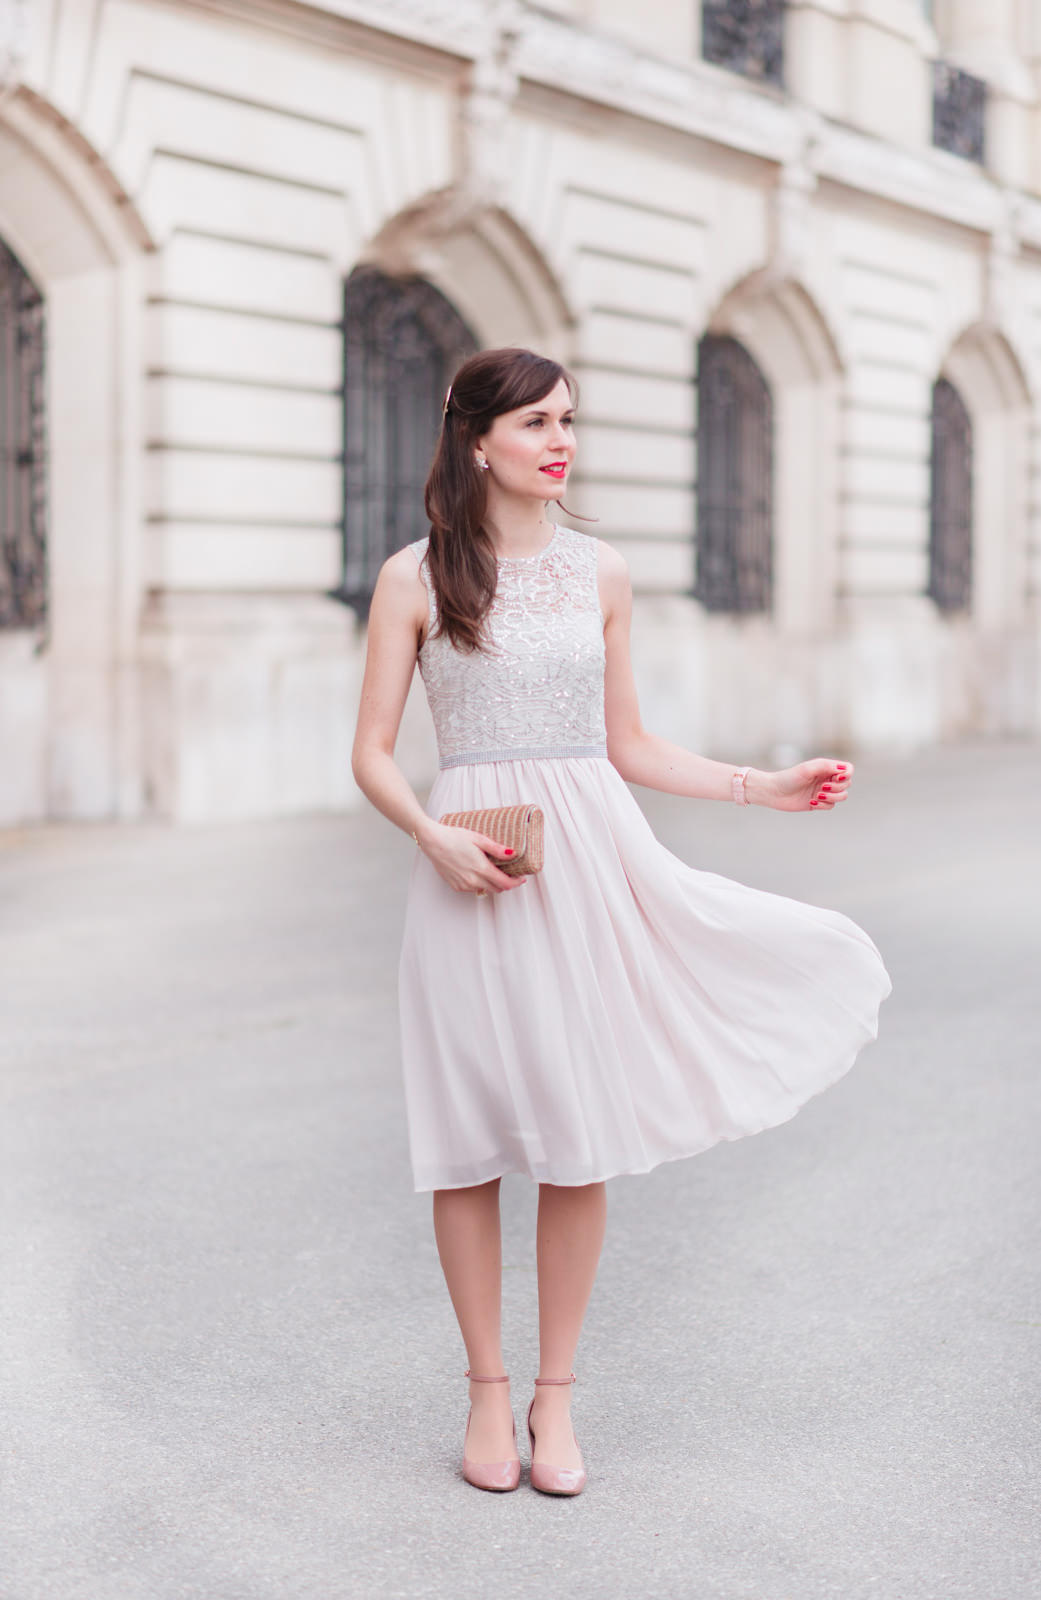 Blog-Mode-And-The-City-Looks-Tenue-Fetes-1-2-3-paris-6